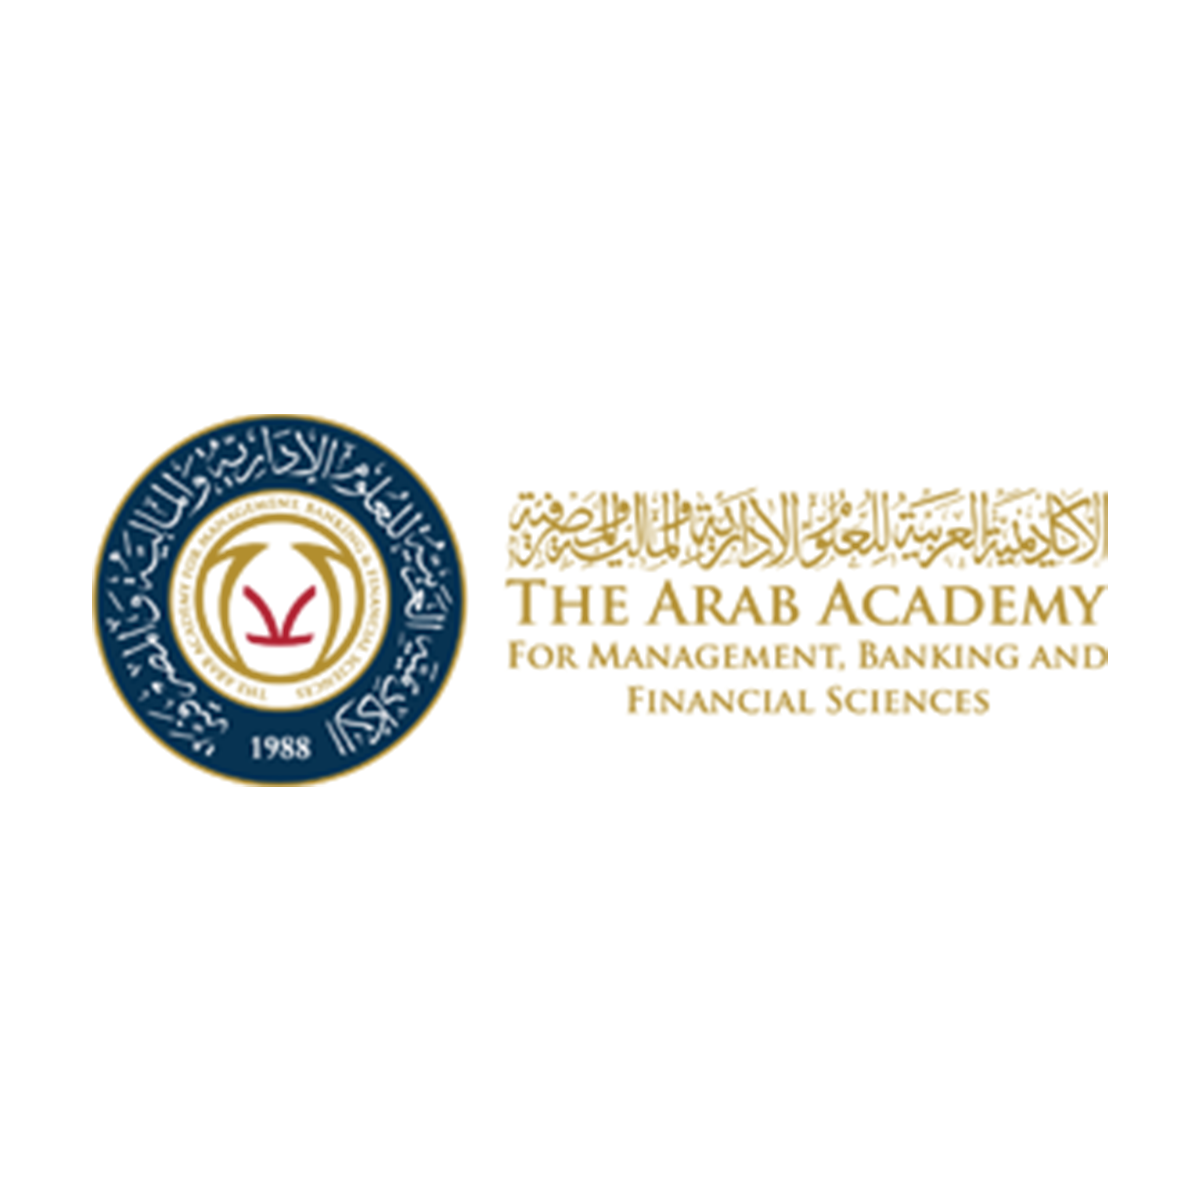 The Arab Academy for Management, Banking and Financial Sciences AAMBFS